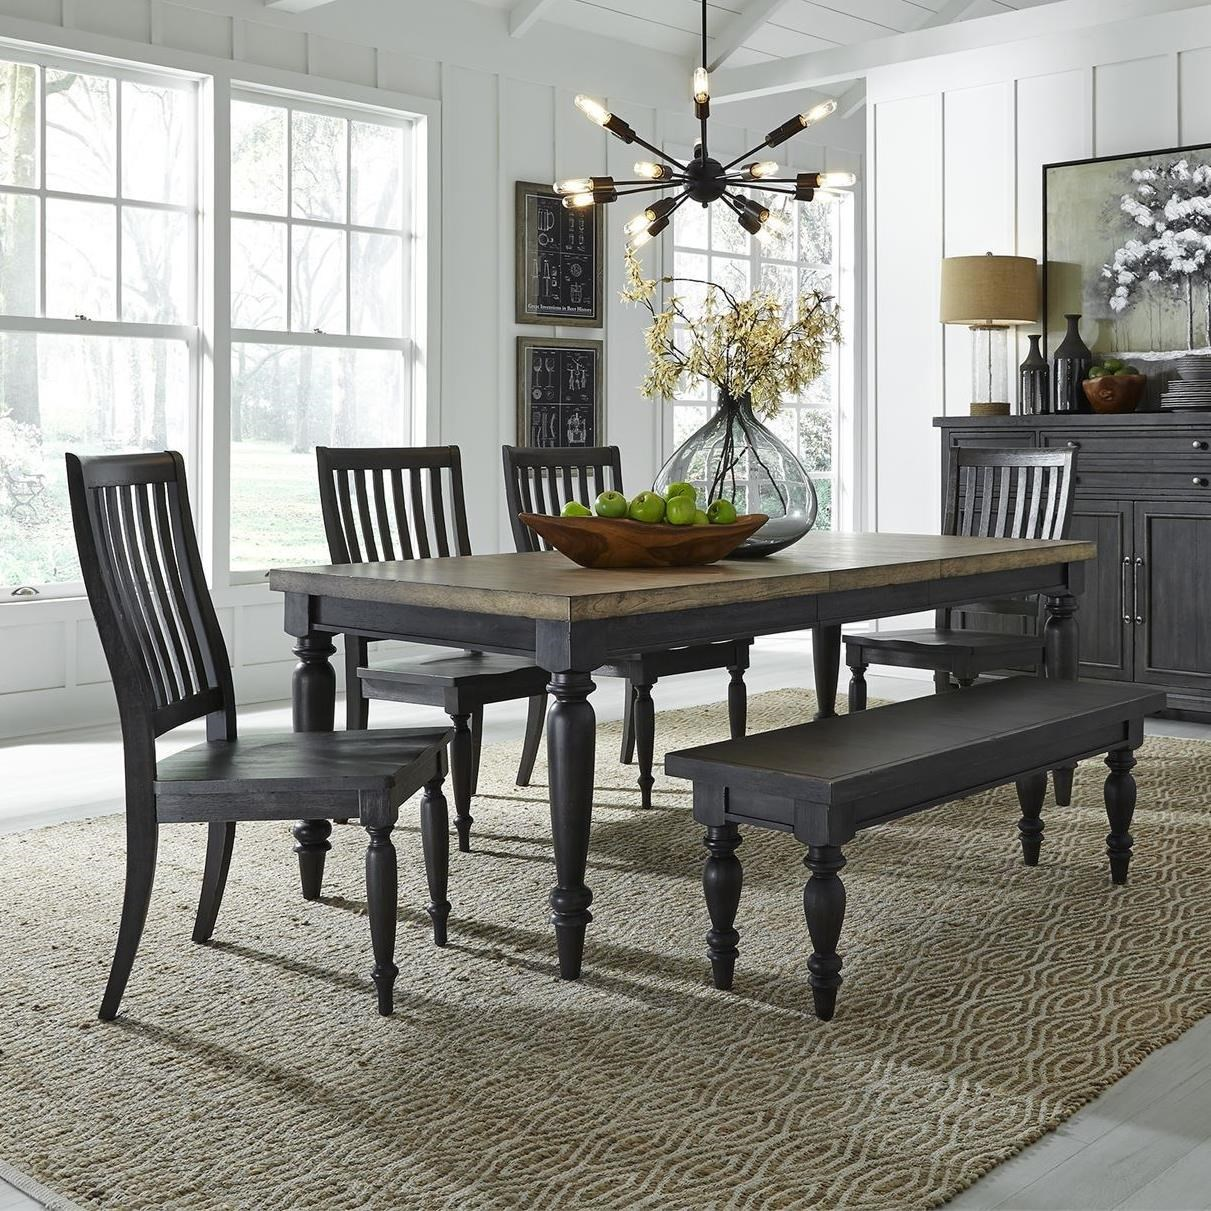 Harvest Home 6-Piece Rectangular Table Set by Liberty Furniture at Standard Furniture